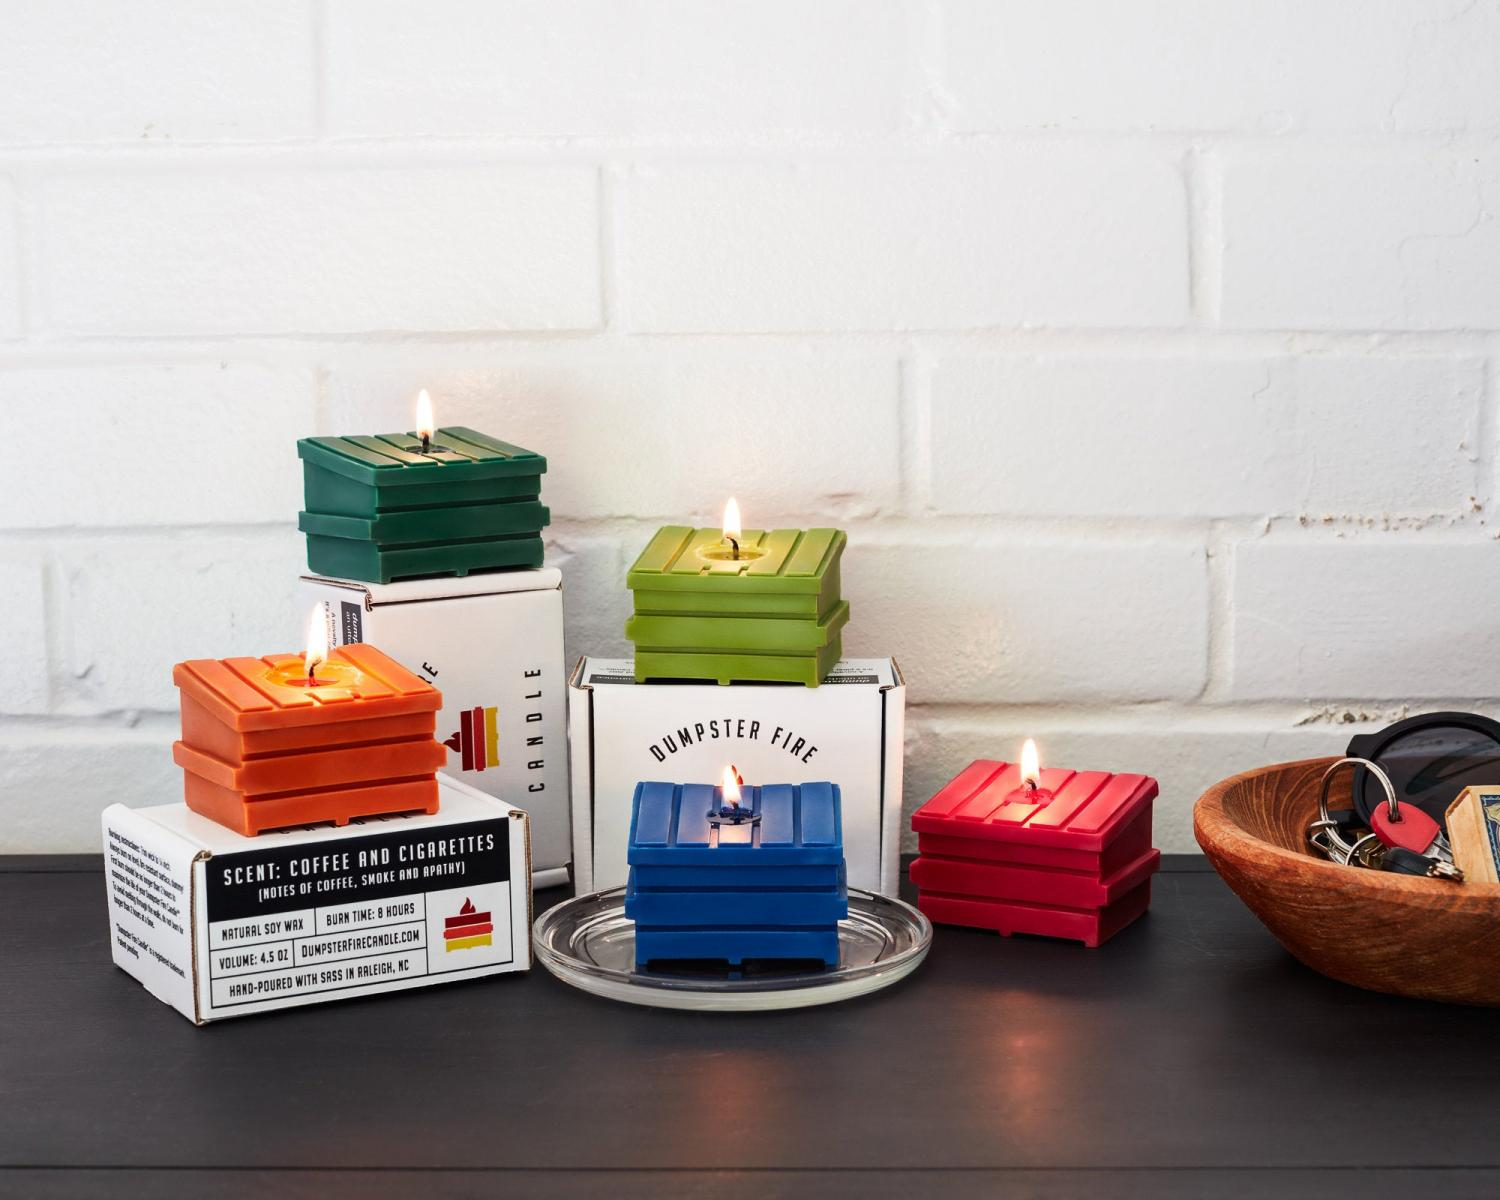 Dumpster Fire Candles - Dumpster shaped candles